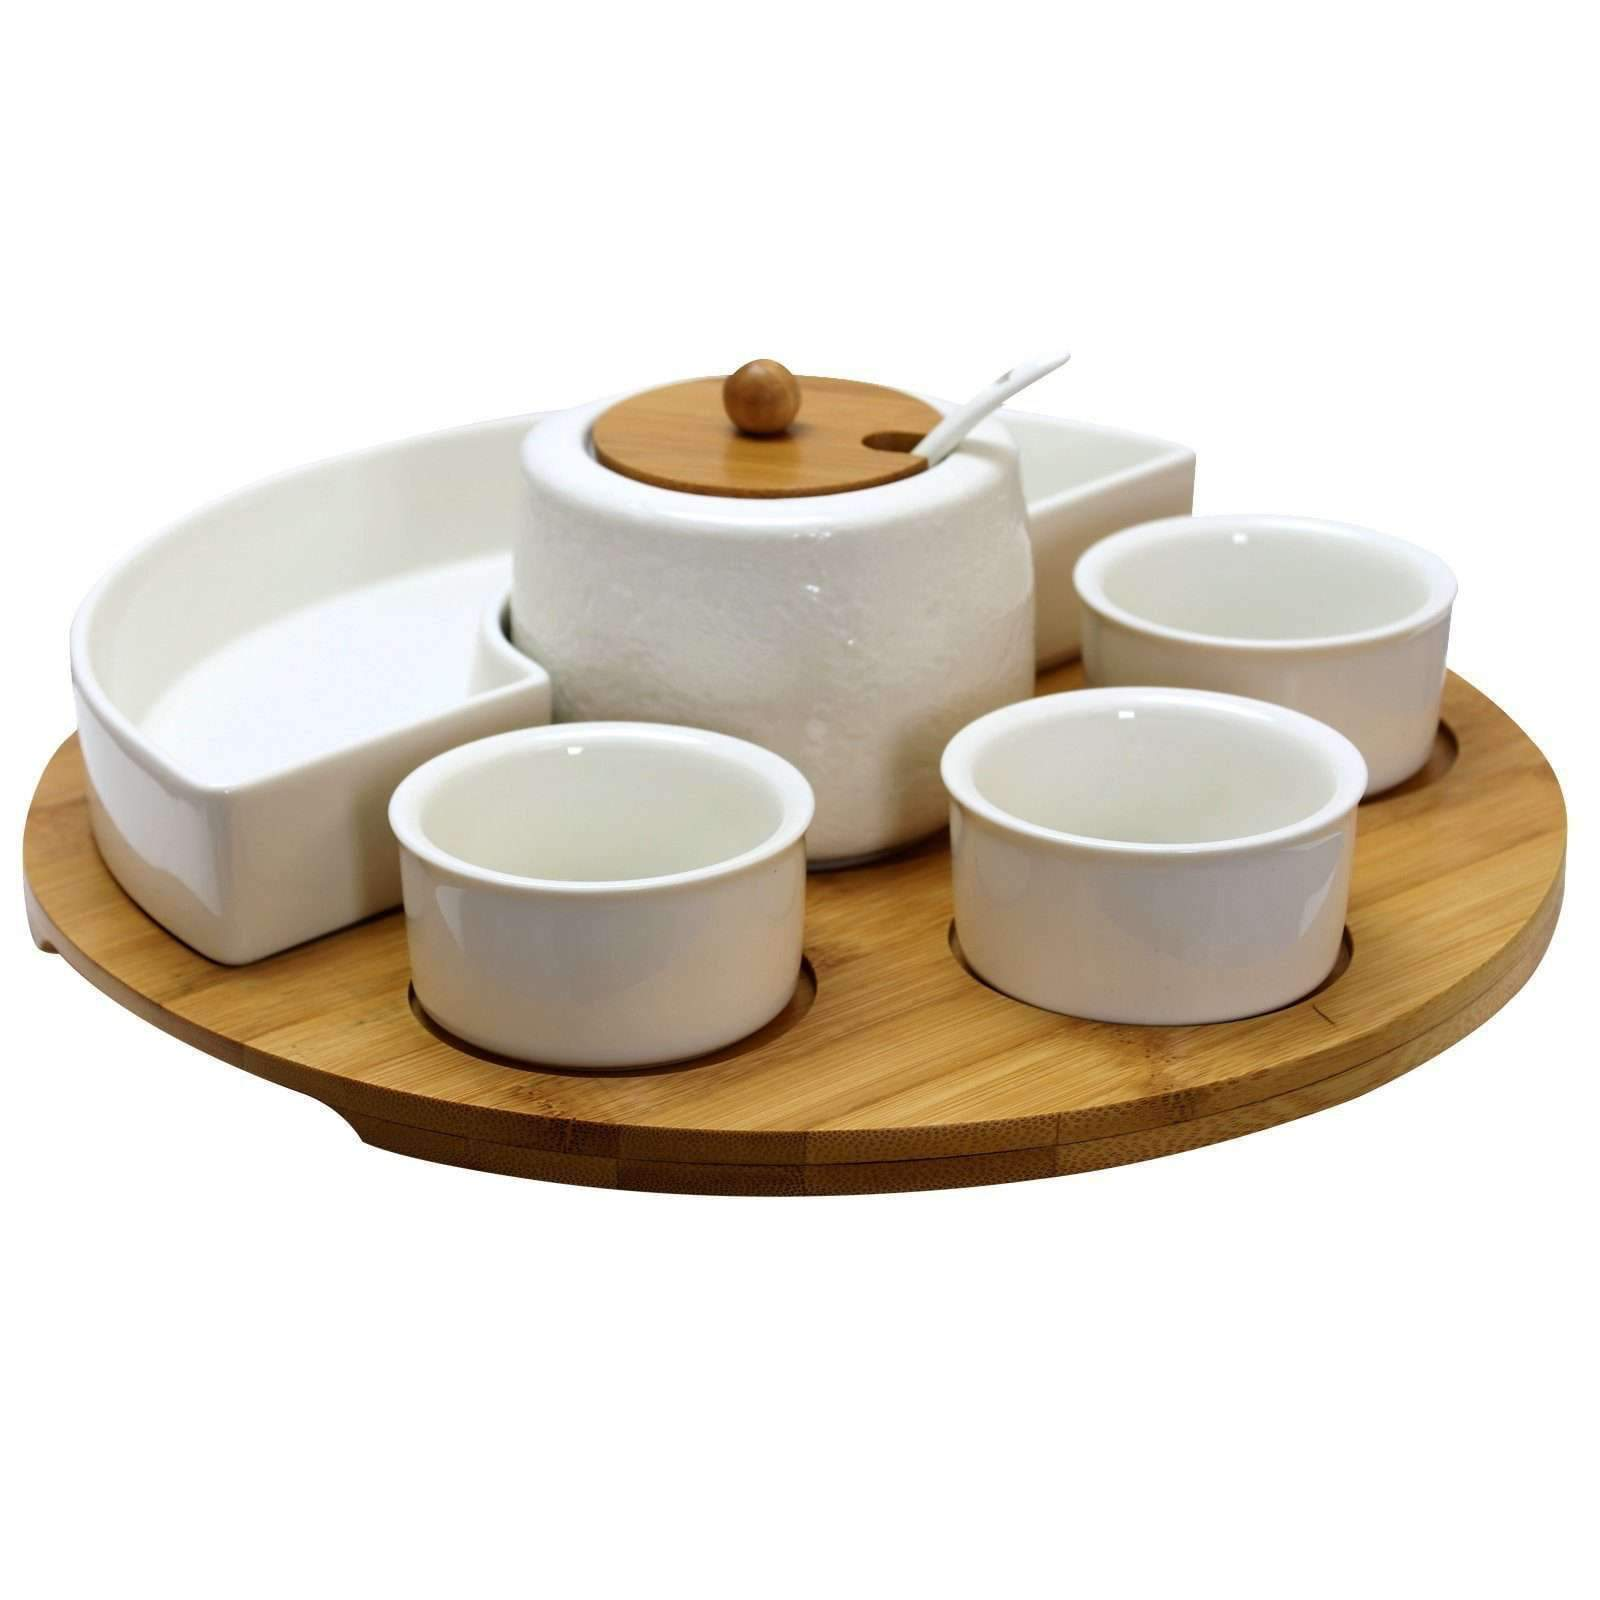 Elama Tableware Elama Signature 8 Piece Appetizer Serving Set with 4 Serving Dishes, Center Condiment Server, Spoon, and Bamboo Serving Tray